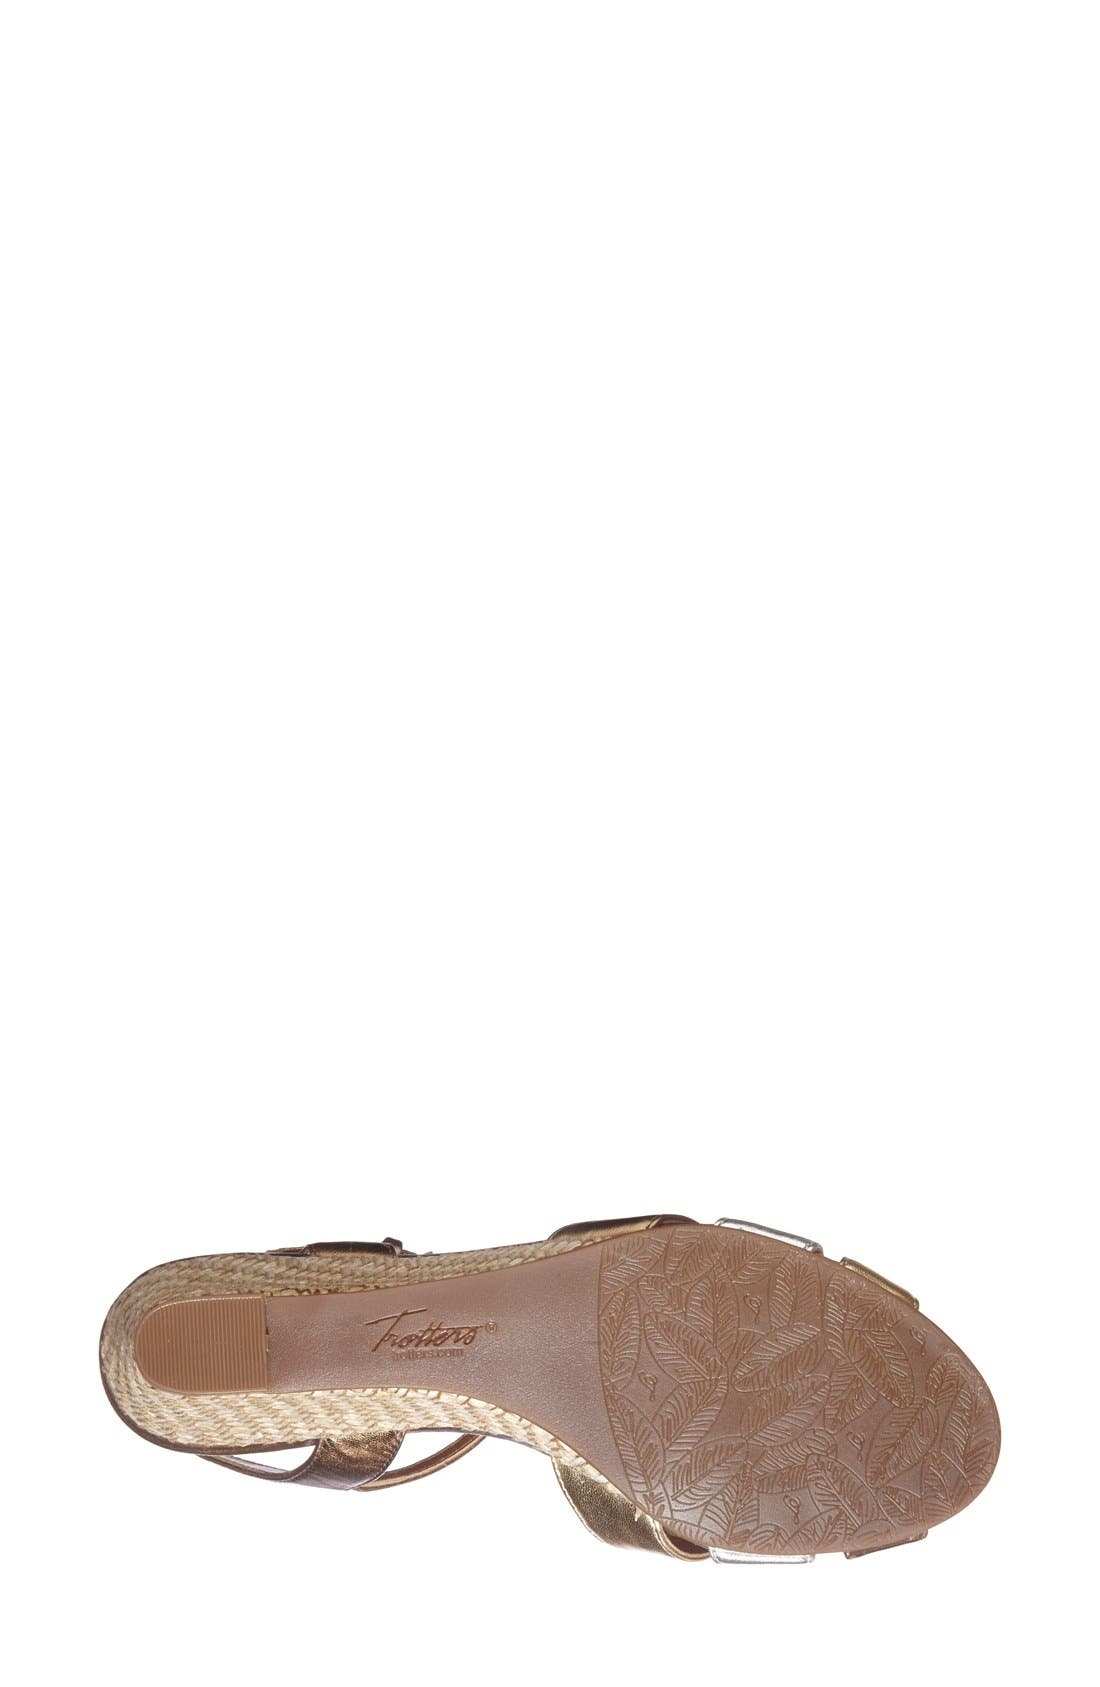 'Mickey' Wedge Sandal,                             Alternate thumbnail 15, color,